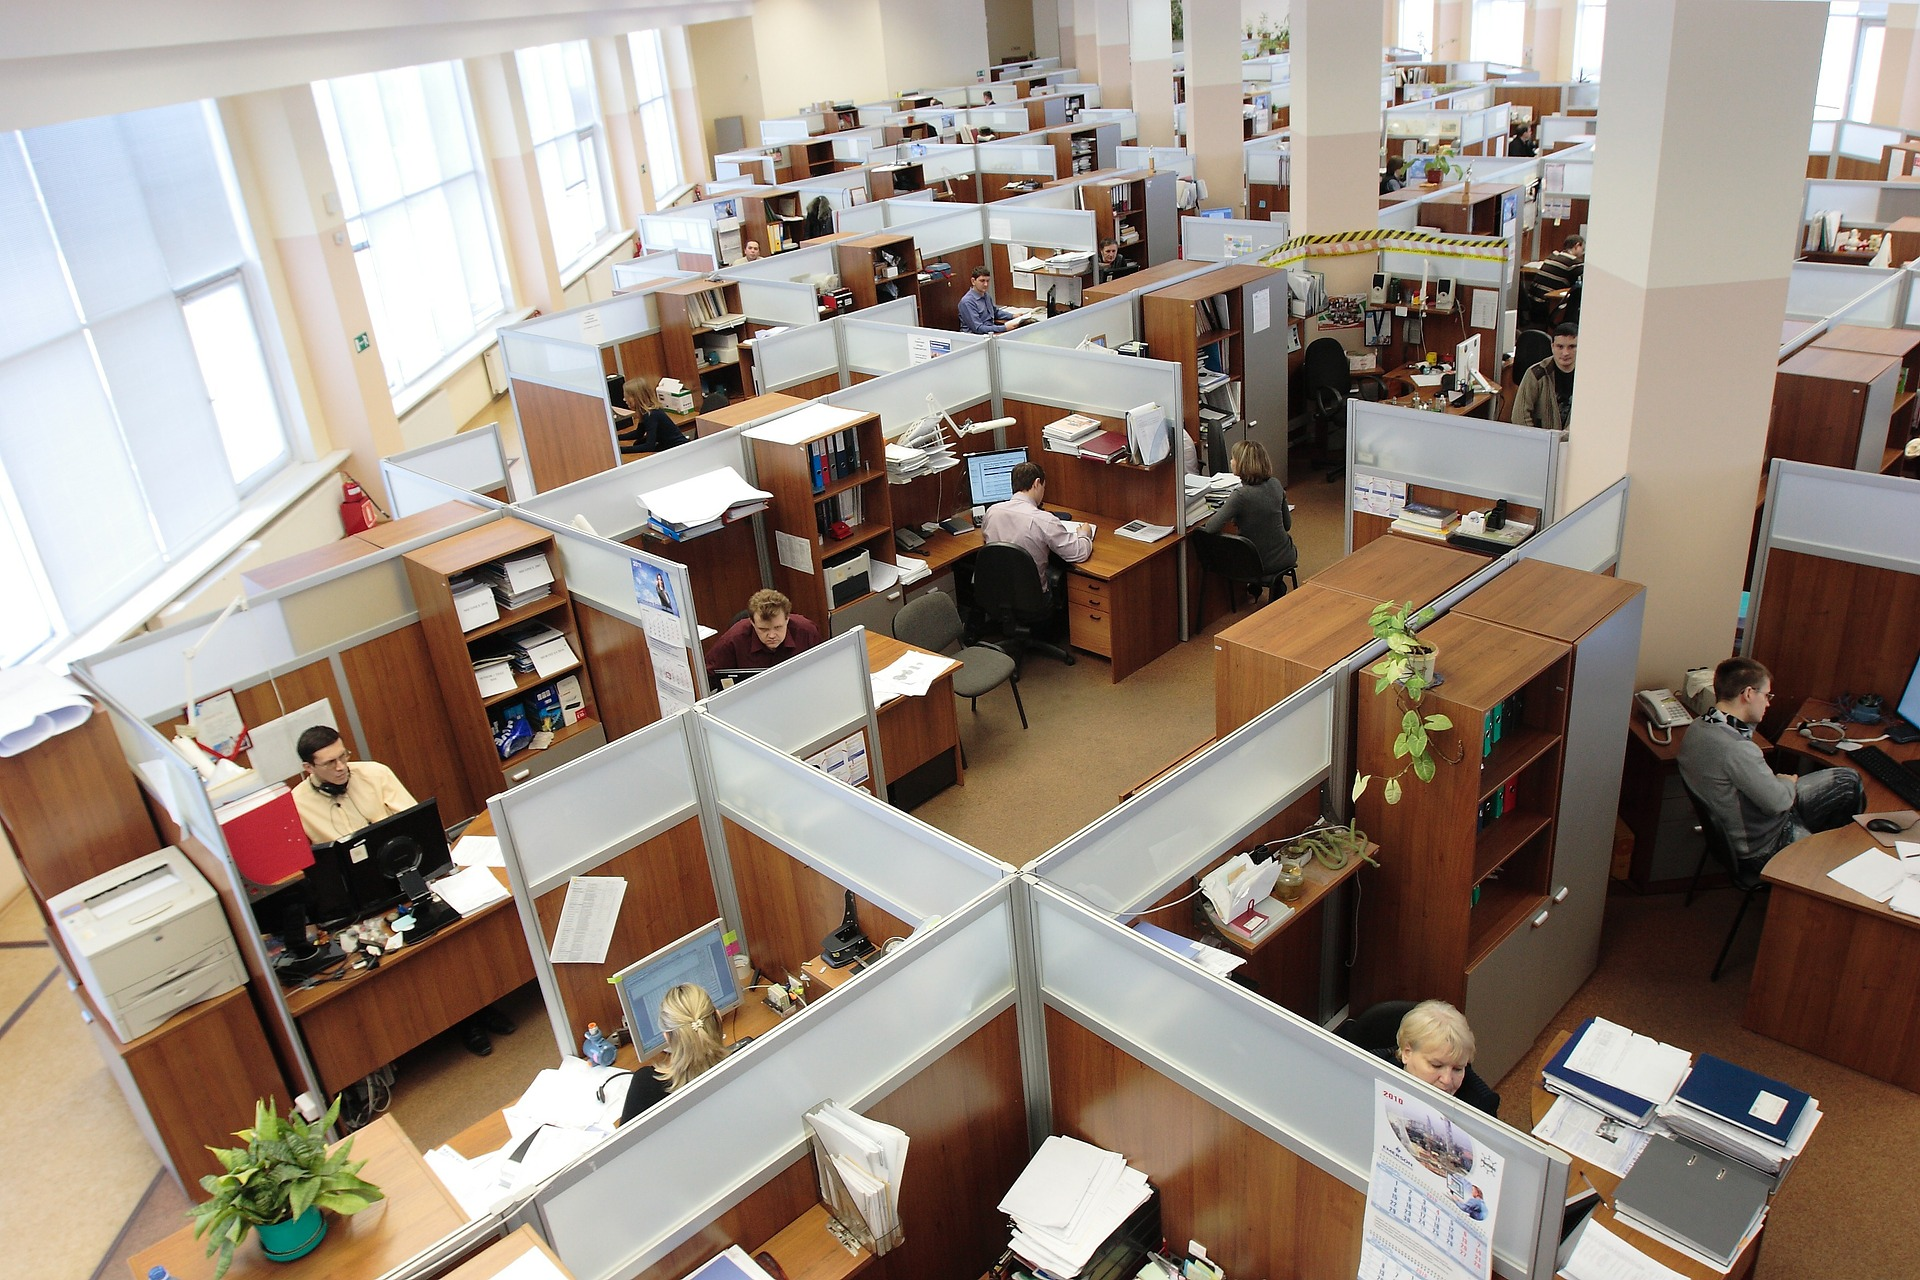 Finding The Right Copier For Your Large Office